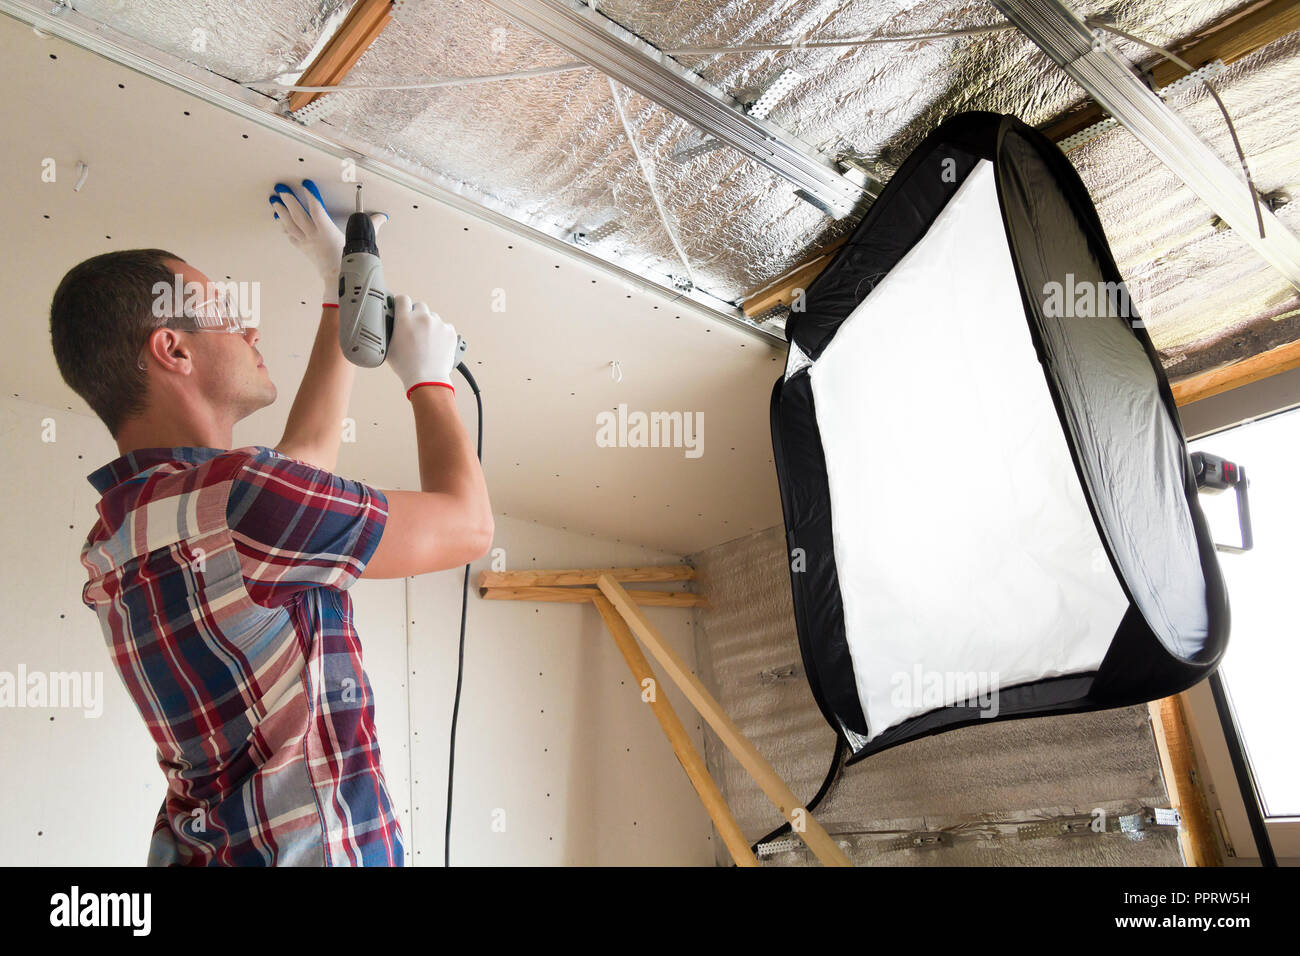 Young man in goggles and work gloves fixing drywall